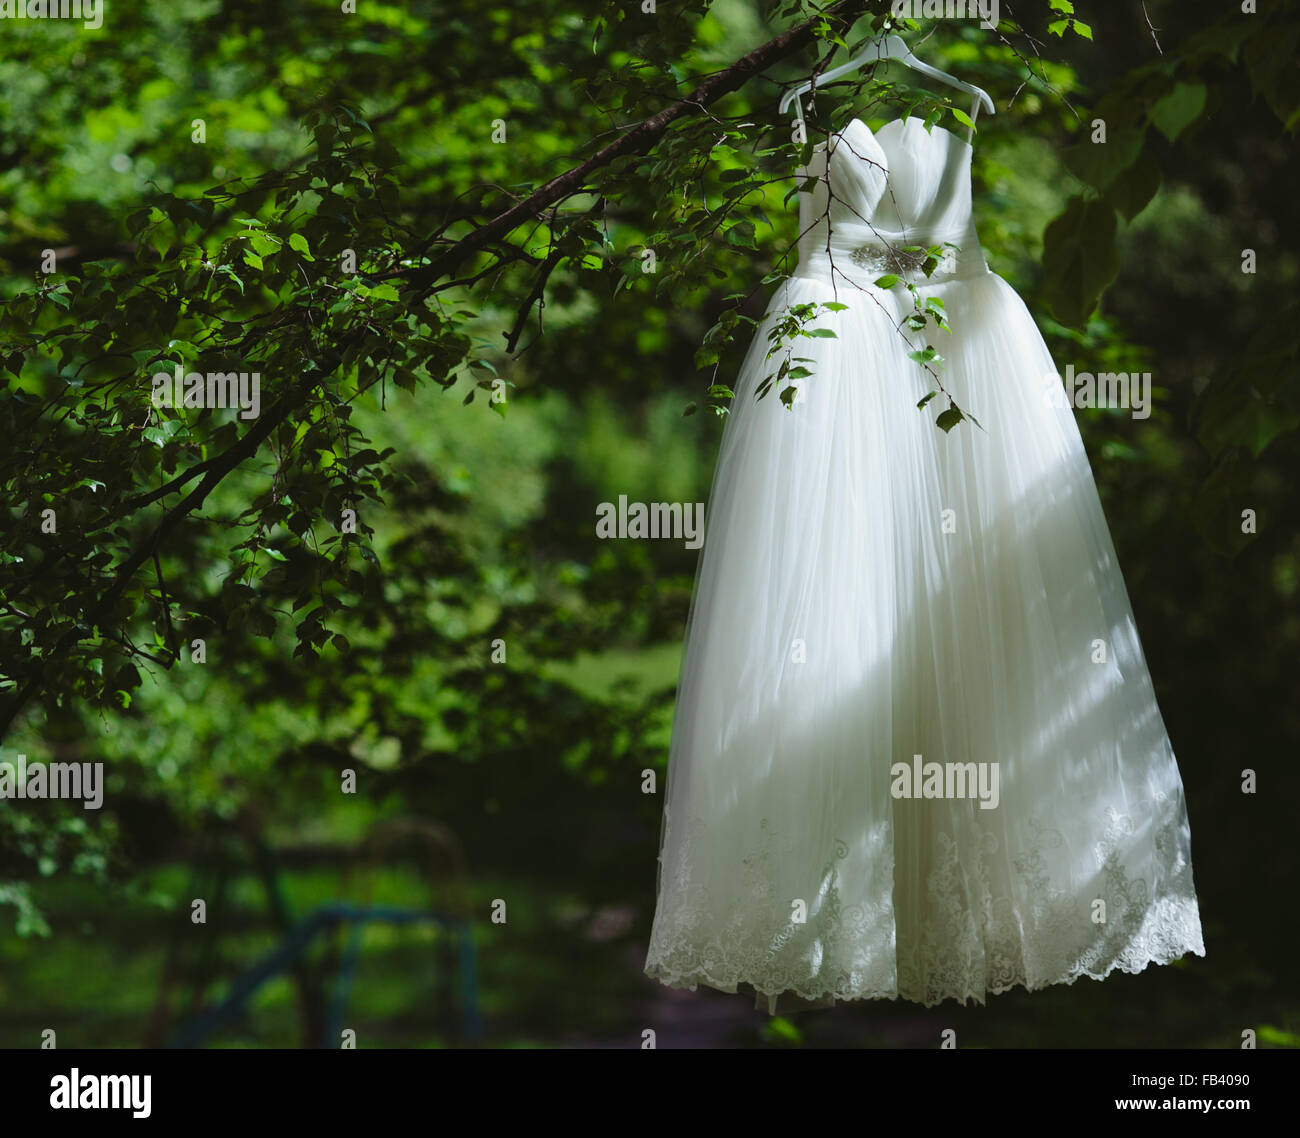 Wedding dress hanging on a tree - Stock Image